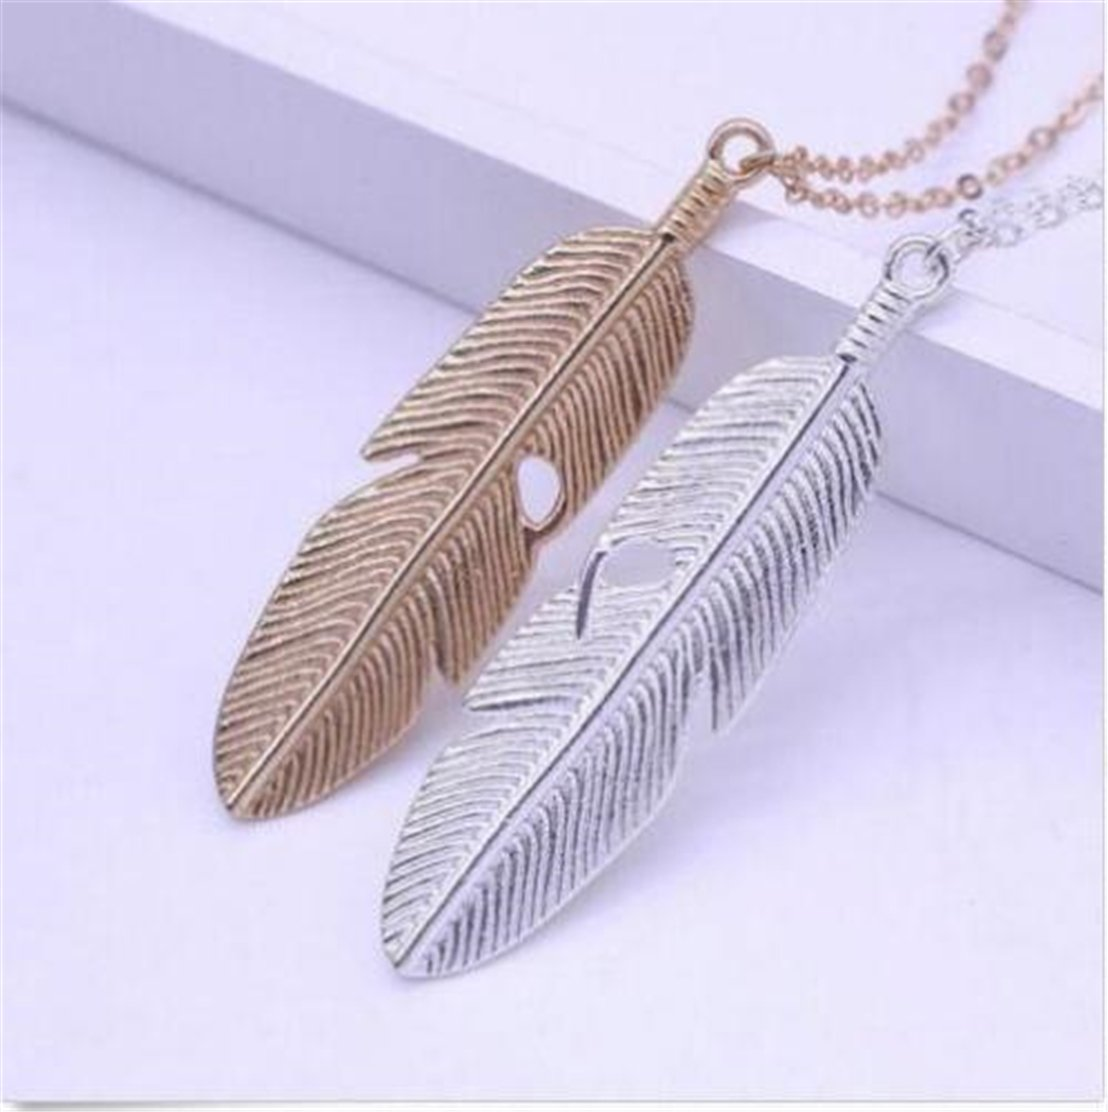 Feather Pendant Necklace $2.18...